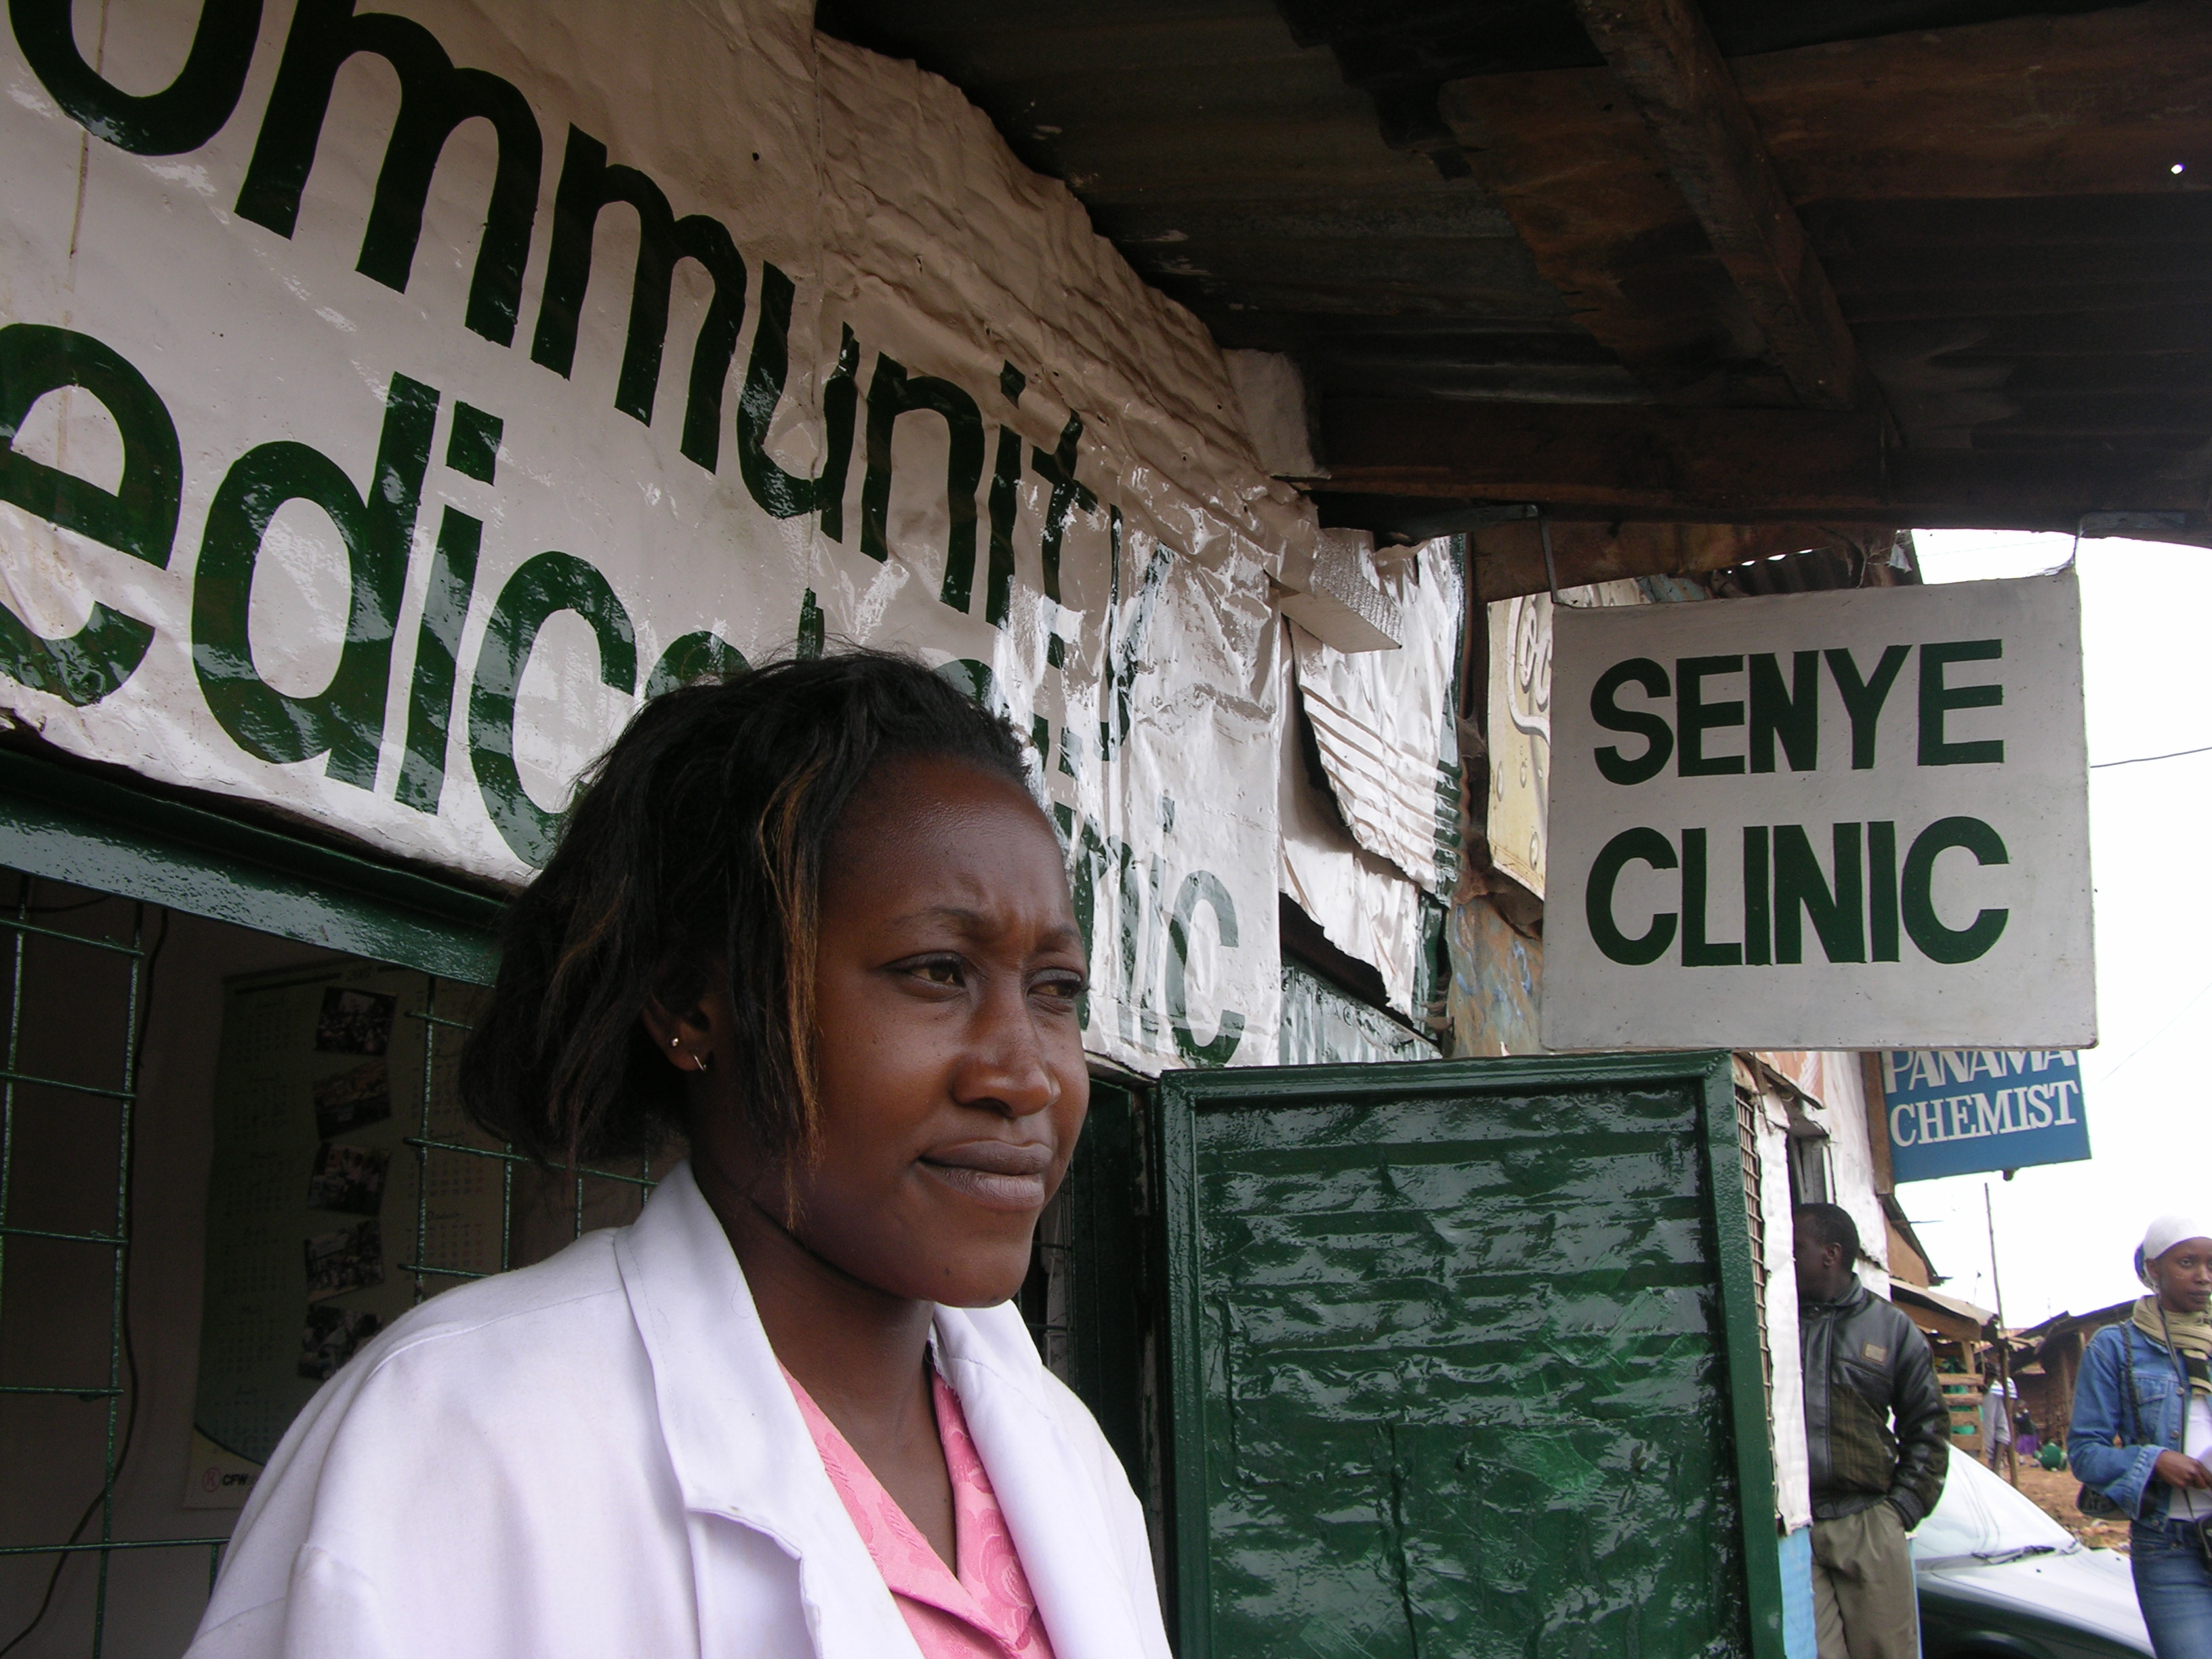 Nurse and entrepreneur Dorah Nyanja outside the health clinic she owns and operates in Nairobi's Kibera slum, Kenya, 2007.